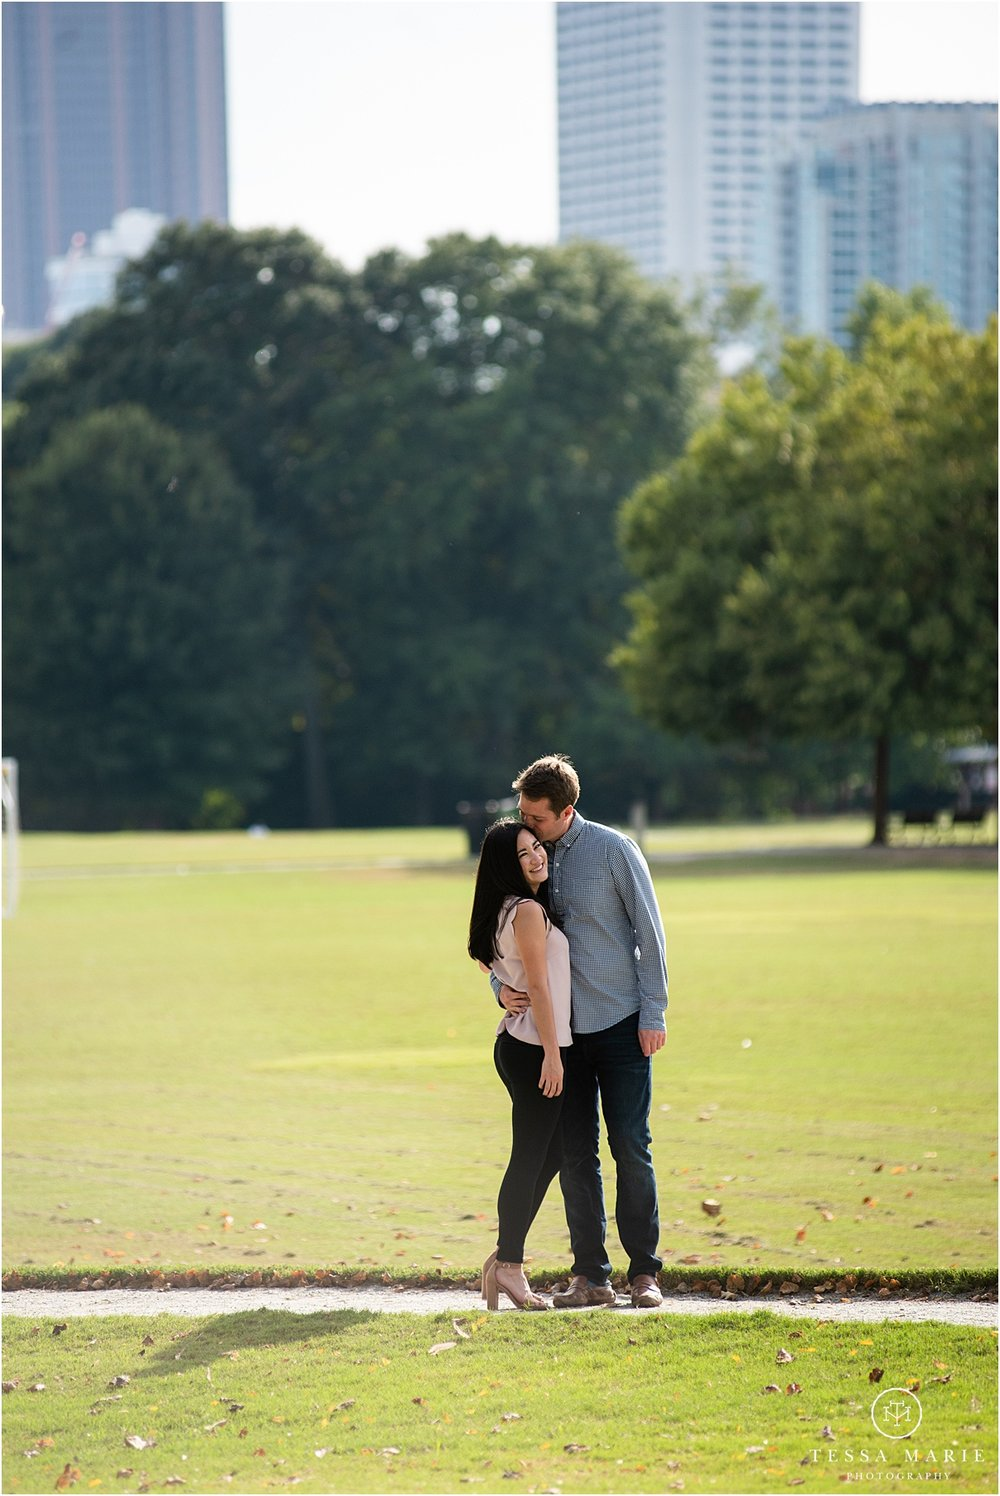 Tessa_marie_photography_wedding_photographer_engagement_pictures_piedmont_park_0009.jpg